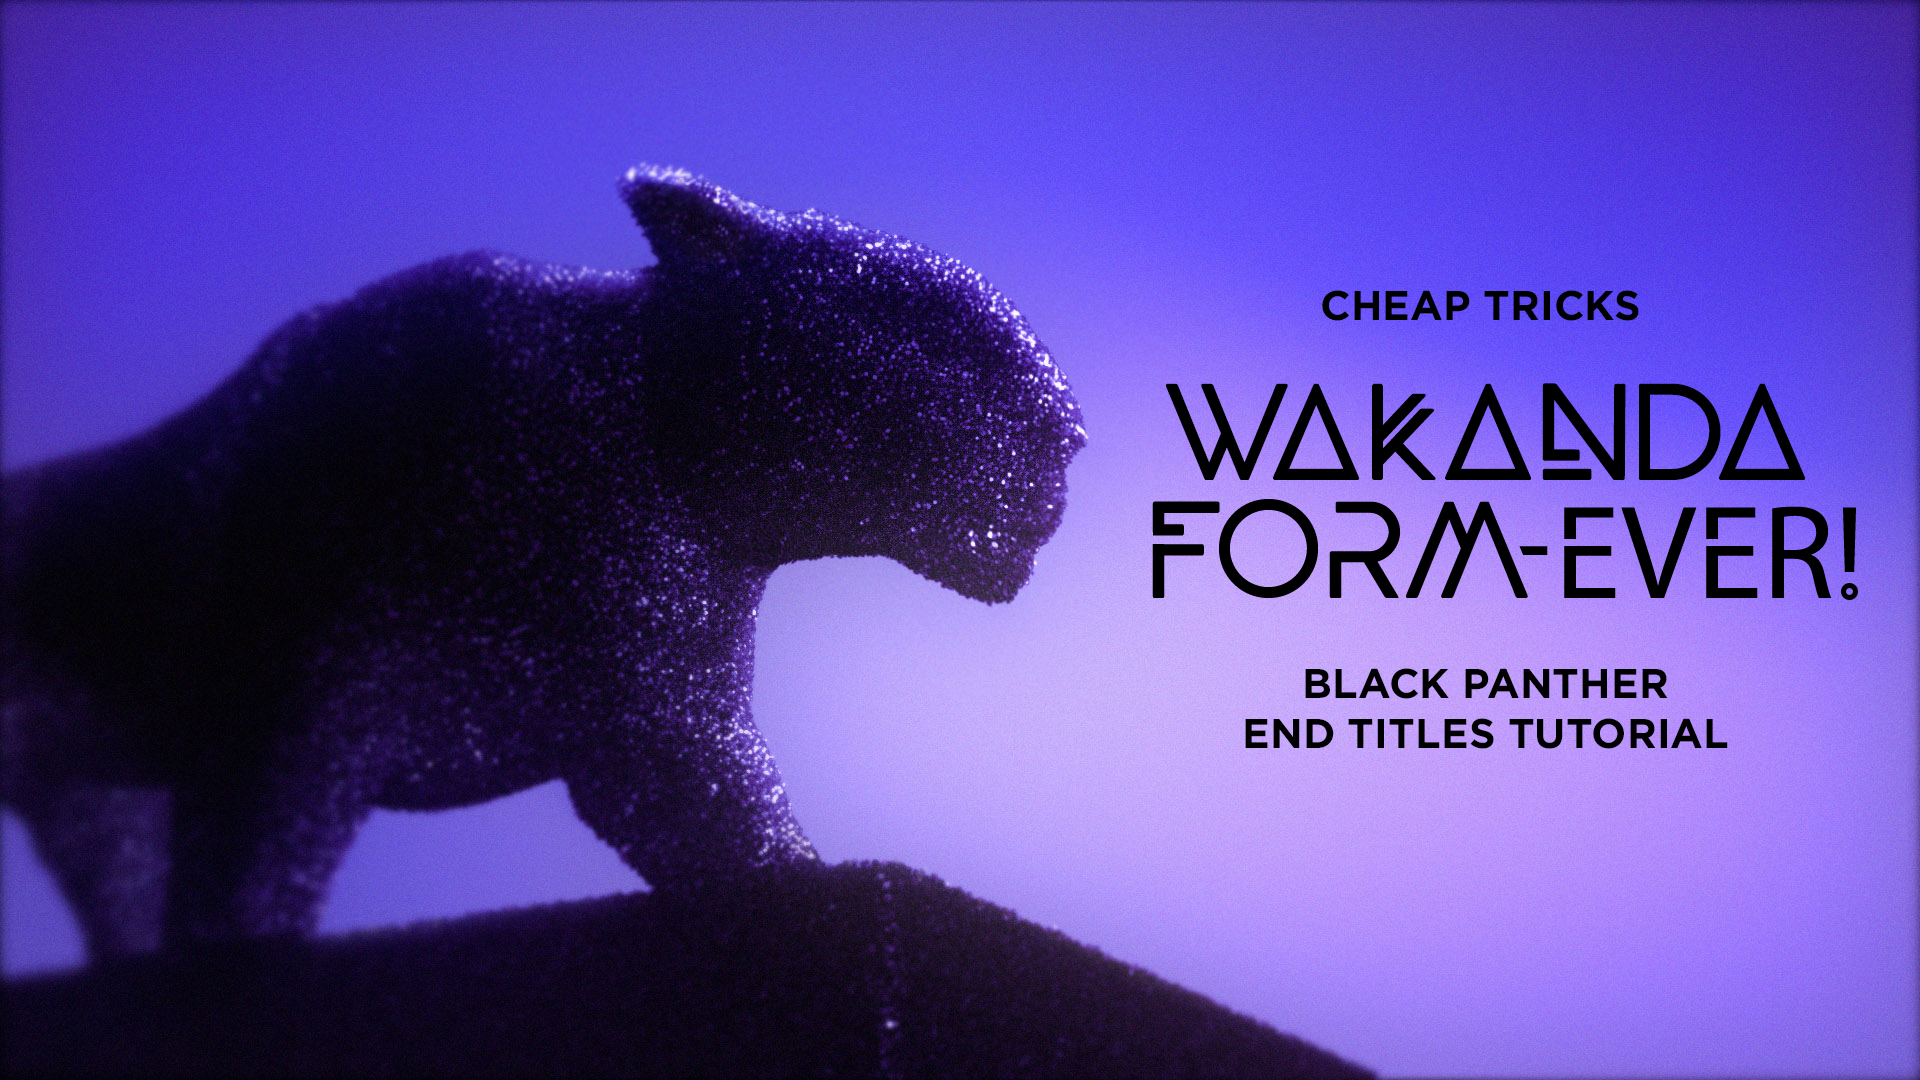 Cheap Tricks #2: Wakanda Form-ever!